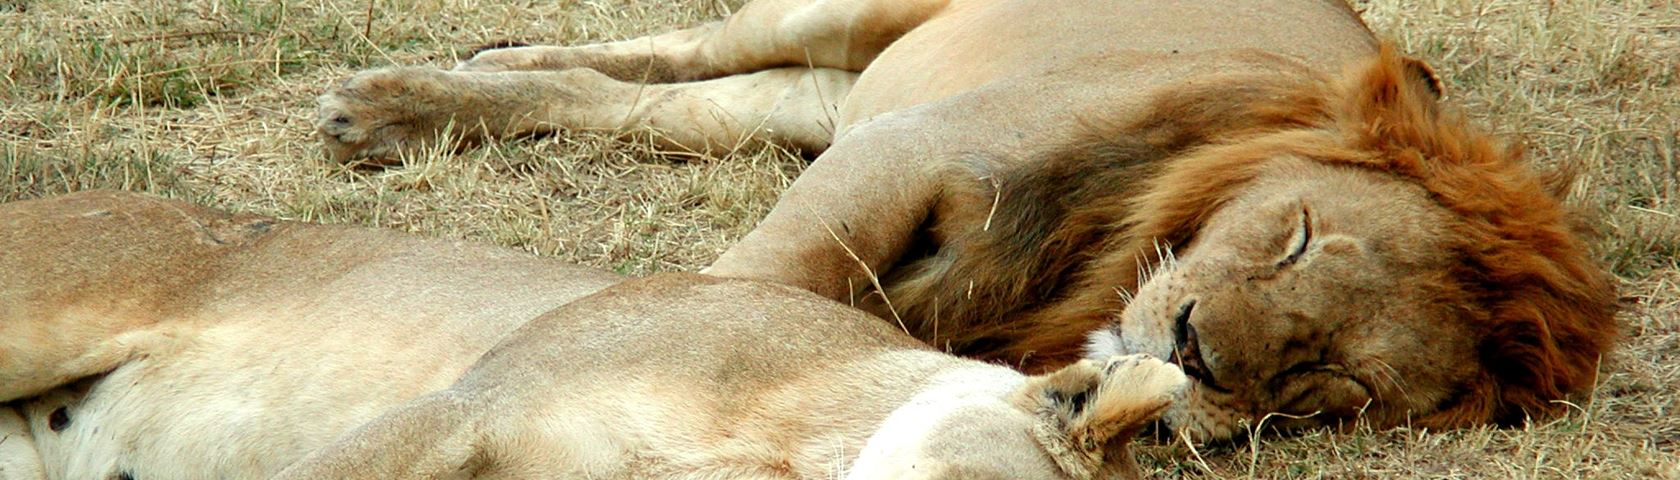 Lioin and Lioness Sleeping